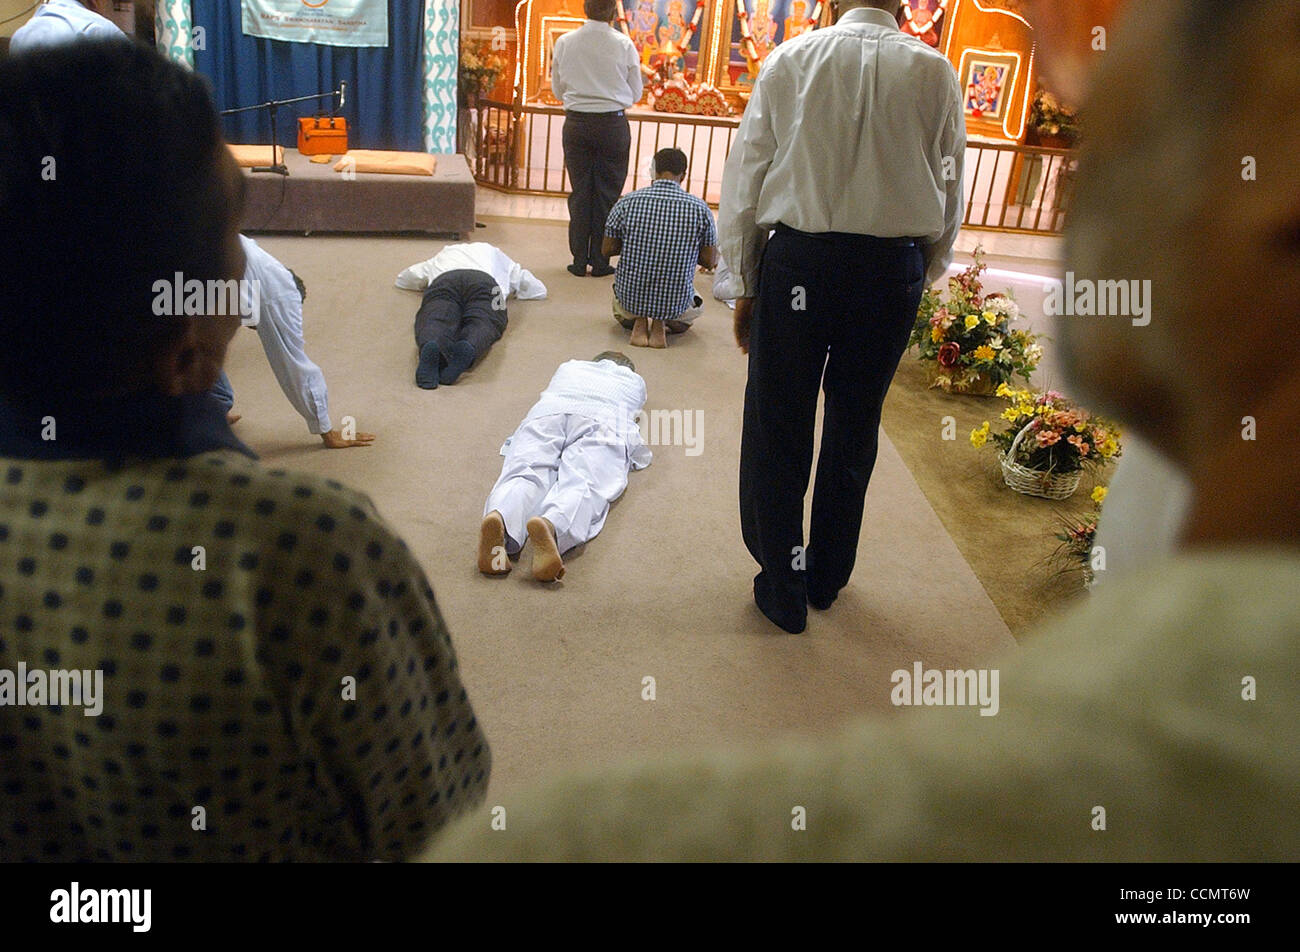 Male devotees at the Swaminarayan Hindu Temple in North San Antonio prostrate in front of the idol after the prayer - Stock Image